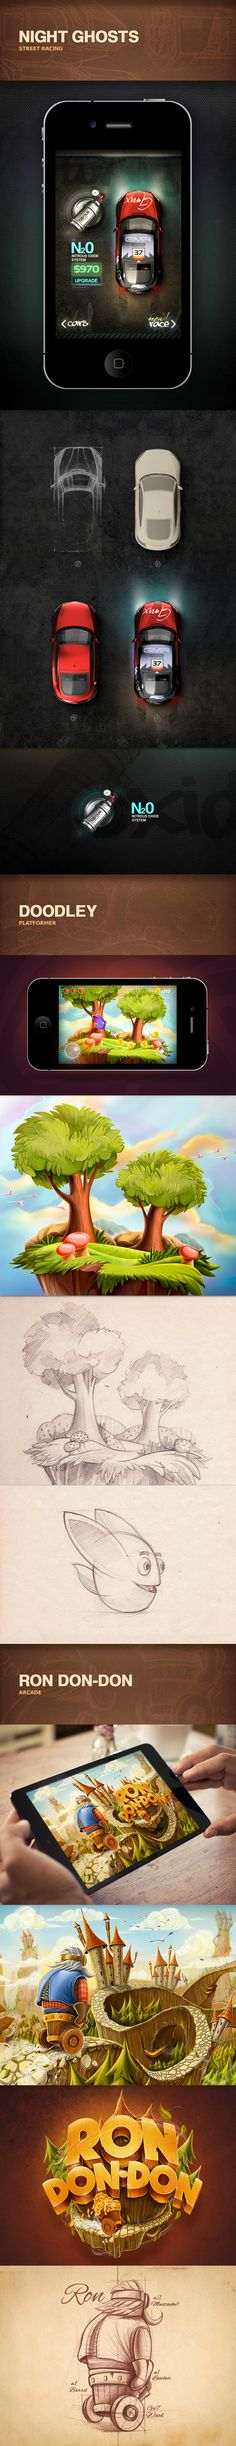 Portfolio 2012-2013 | iOS Games by Mike , via Behance